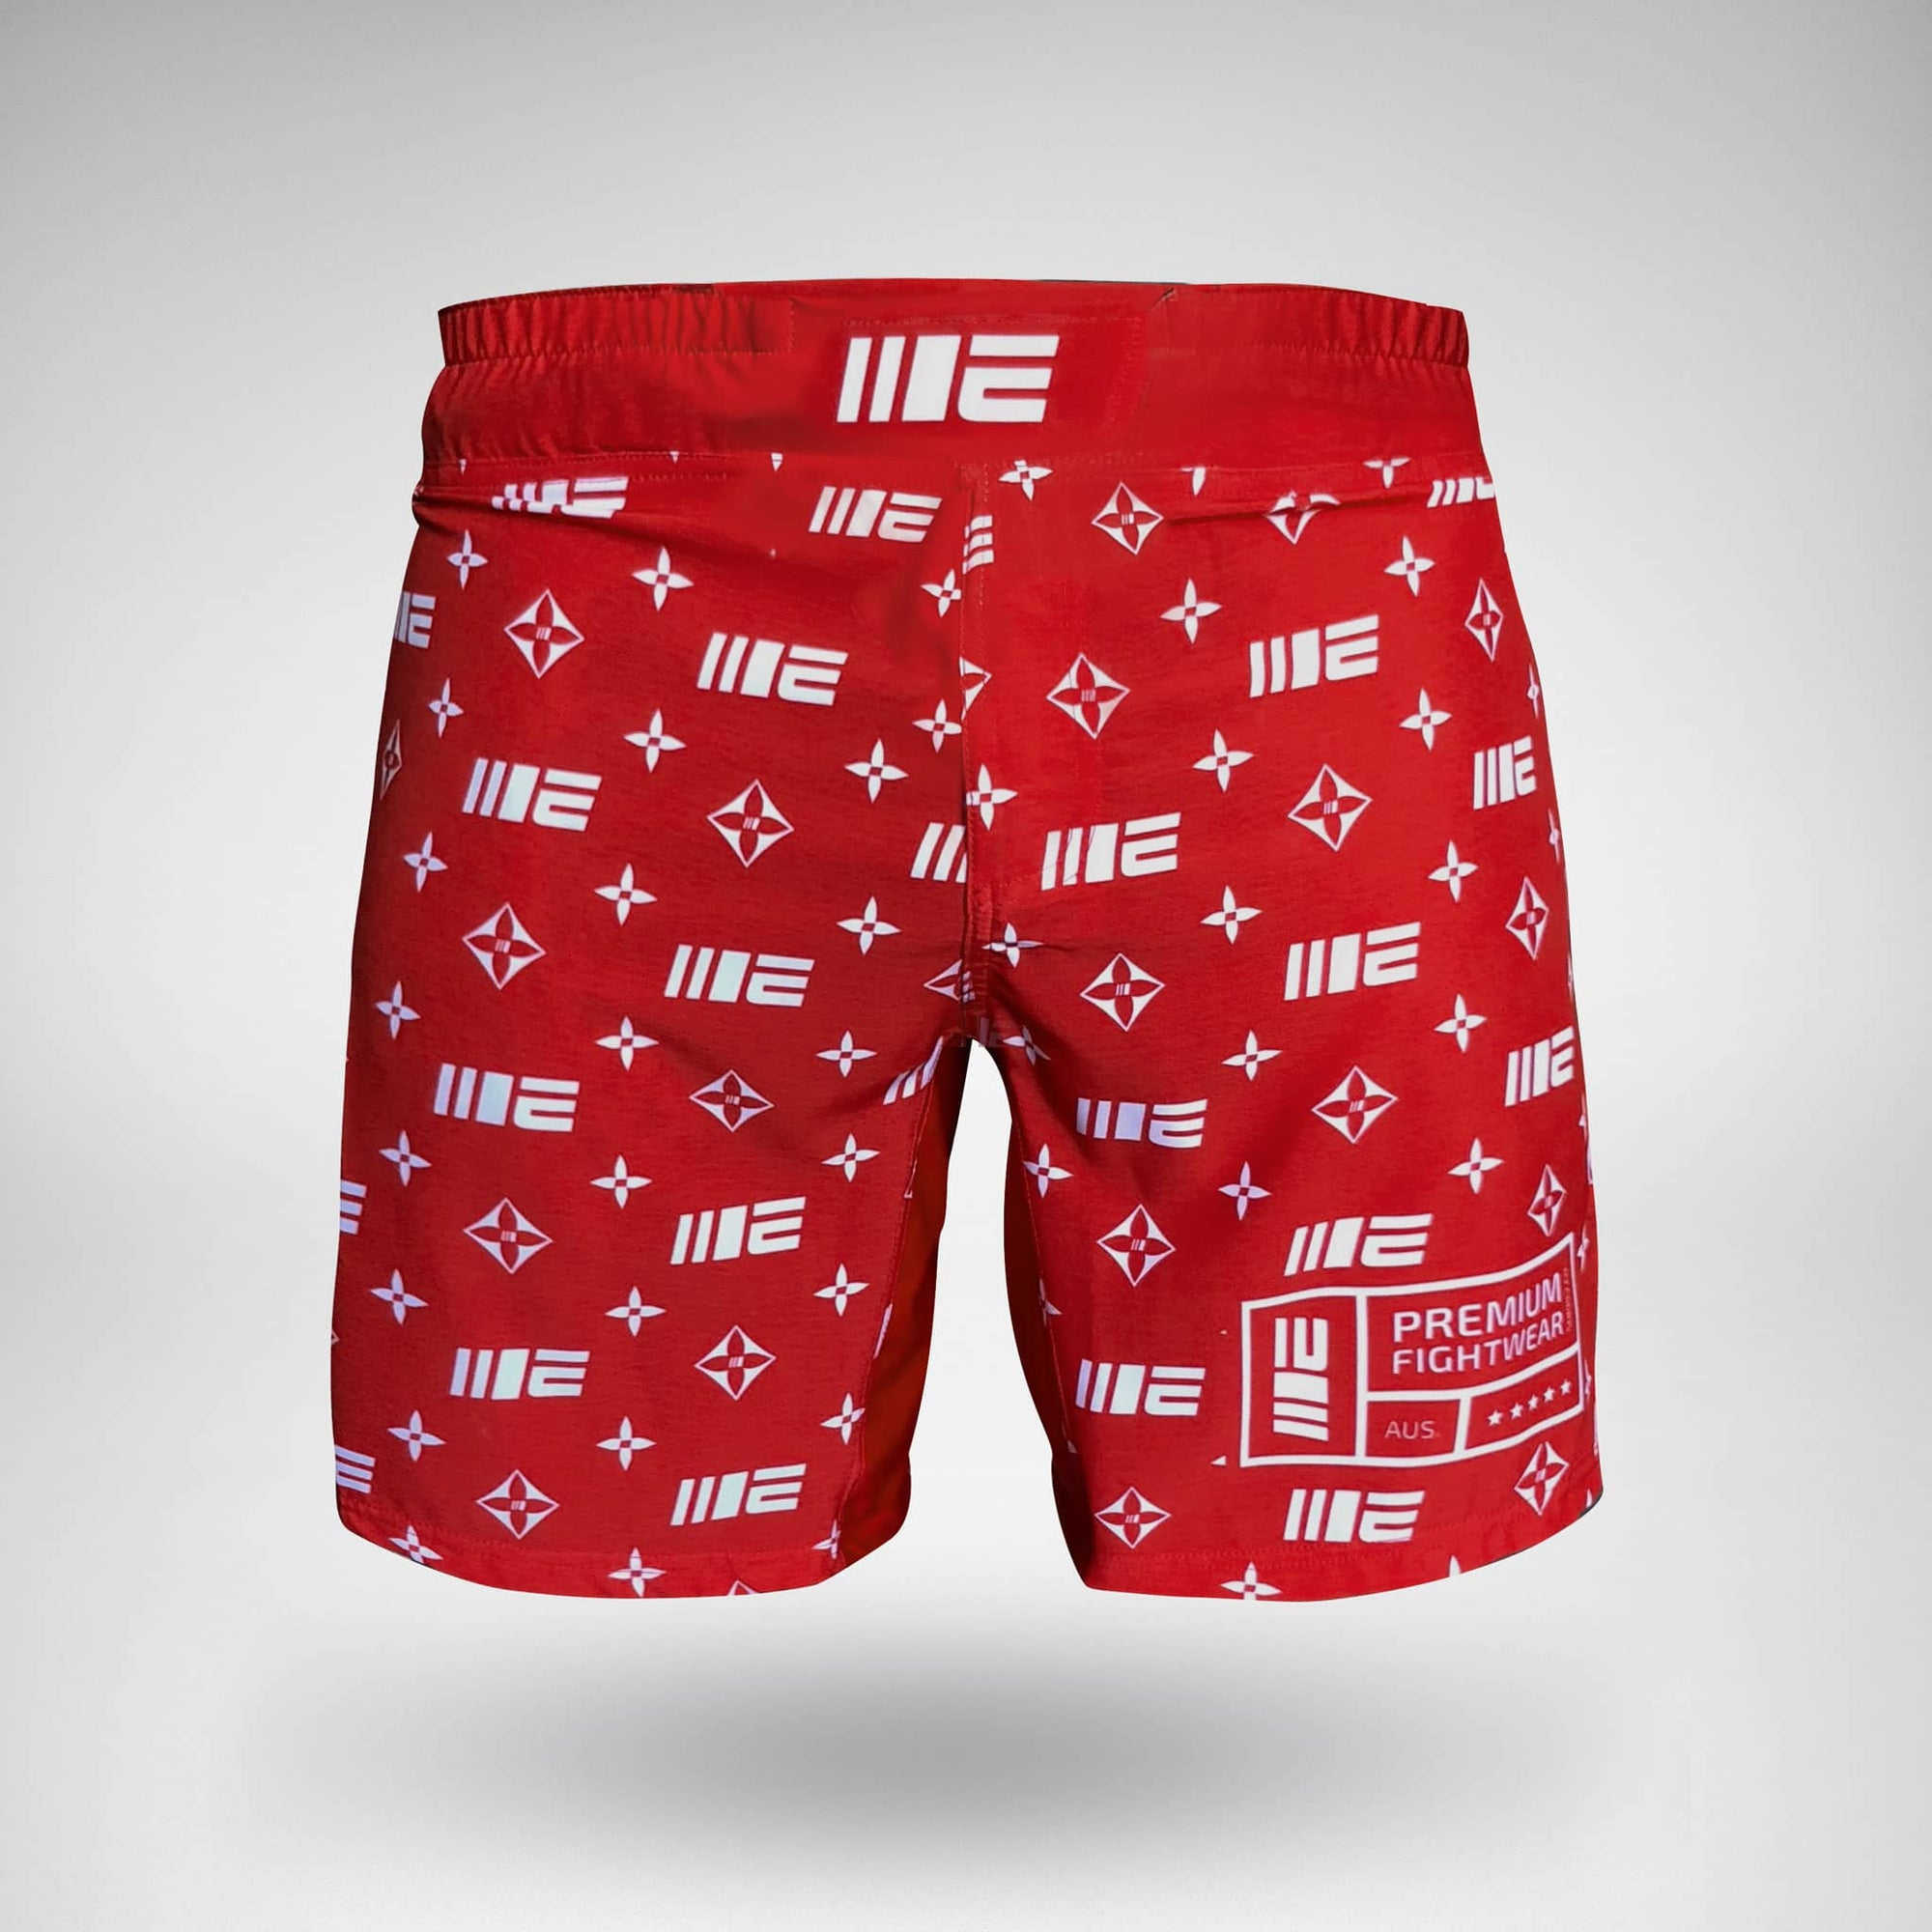 Engage Preme MMA Grappling Short V3.0